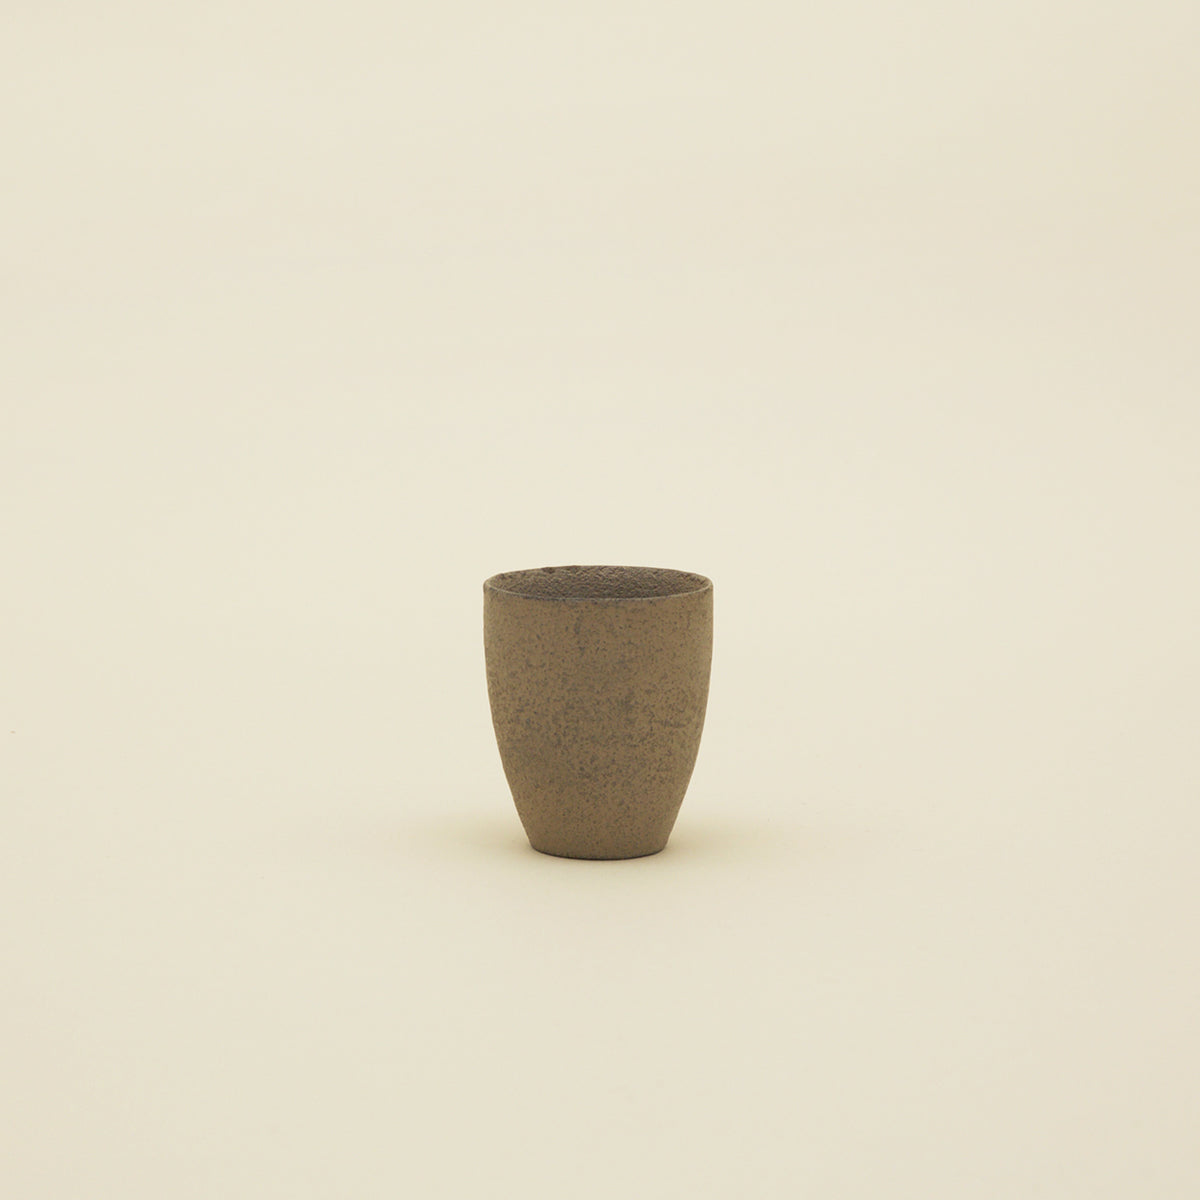 Lacquer Wood Sake Cup